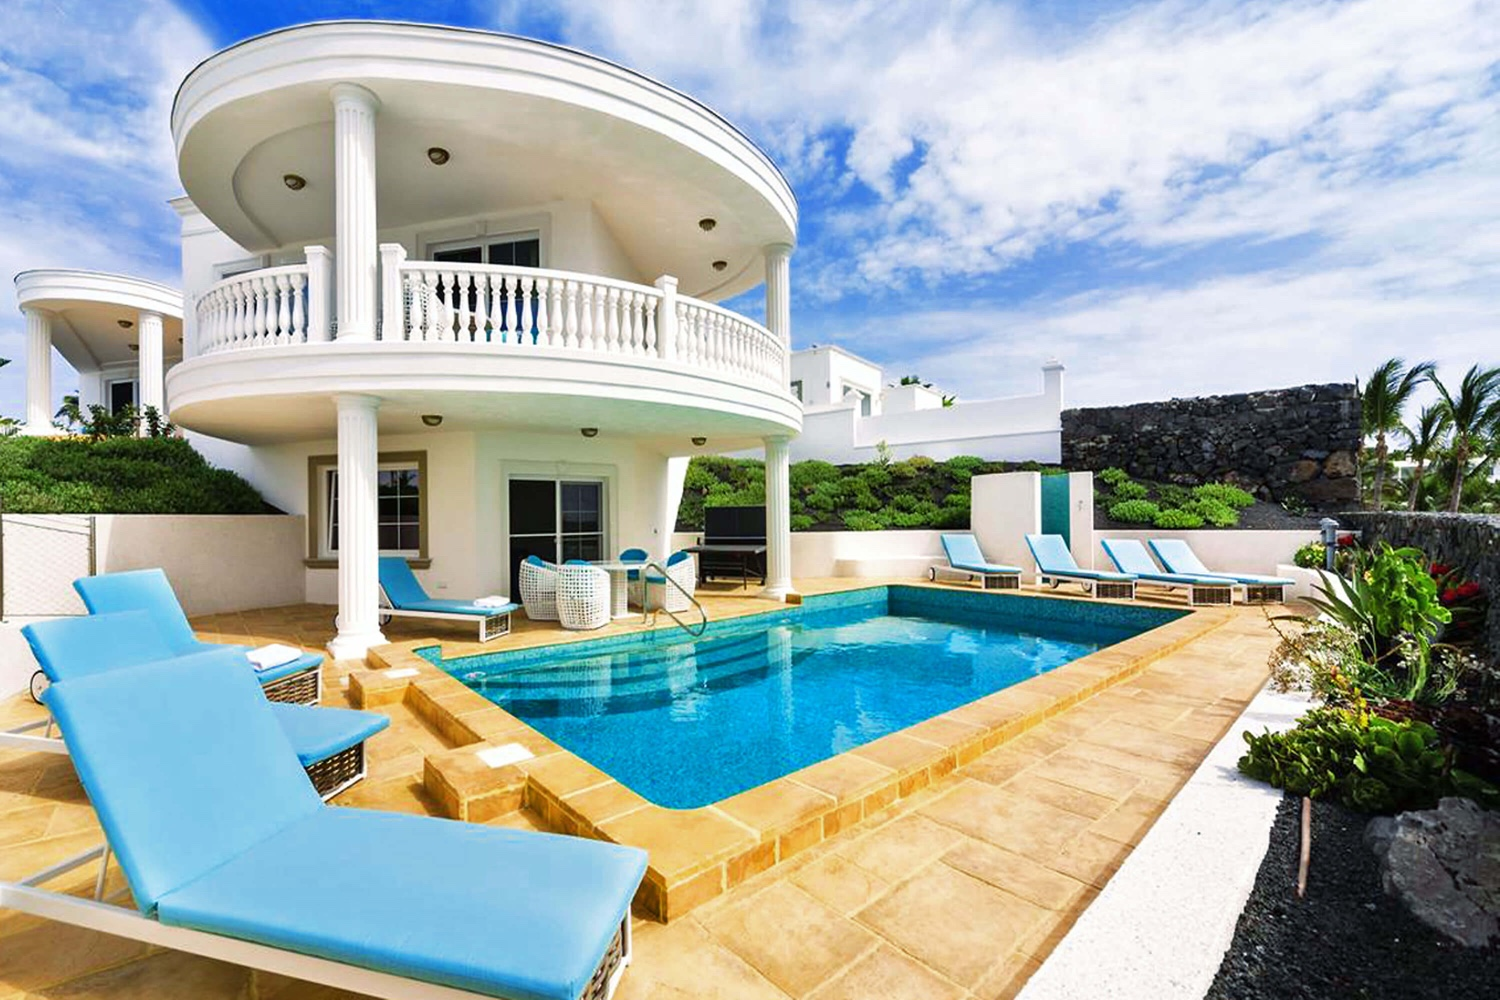 This extraordinary villa in the best location on the elegant marina of Puerto Calero offers the best quality of life combined with wonderful views over the Atlantic Ocean